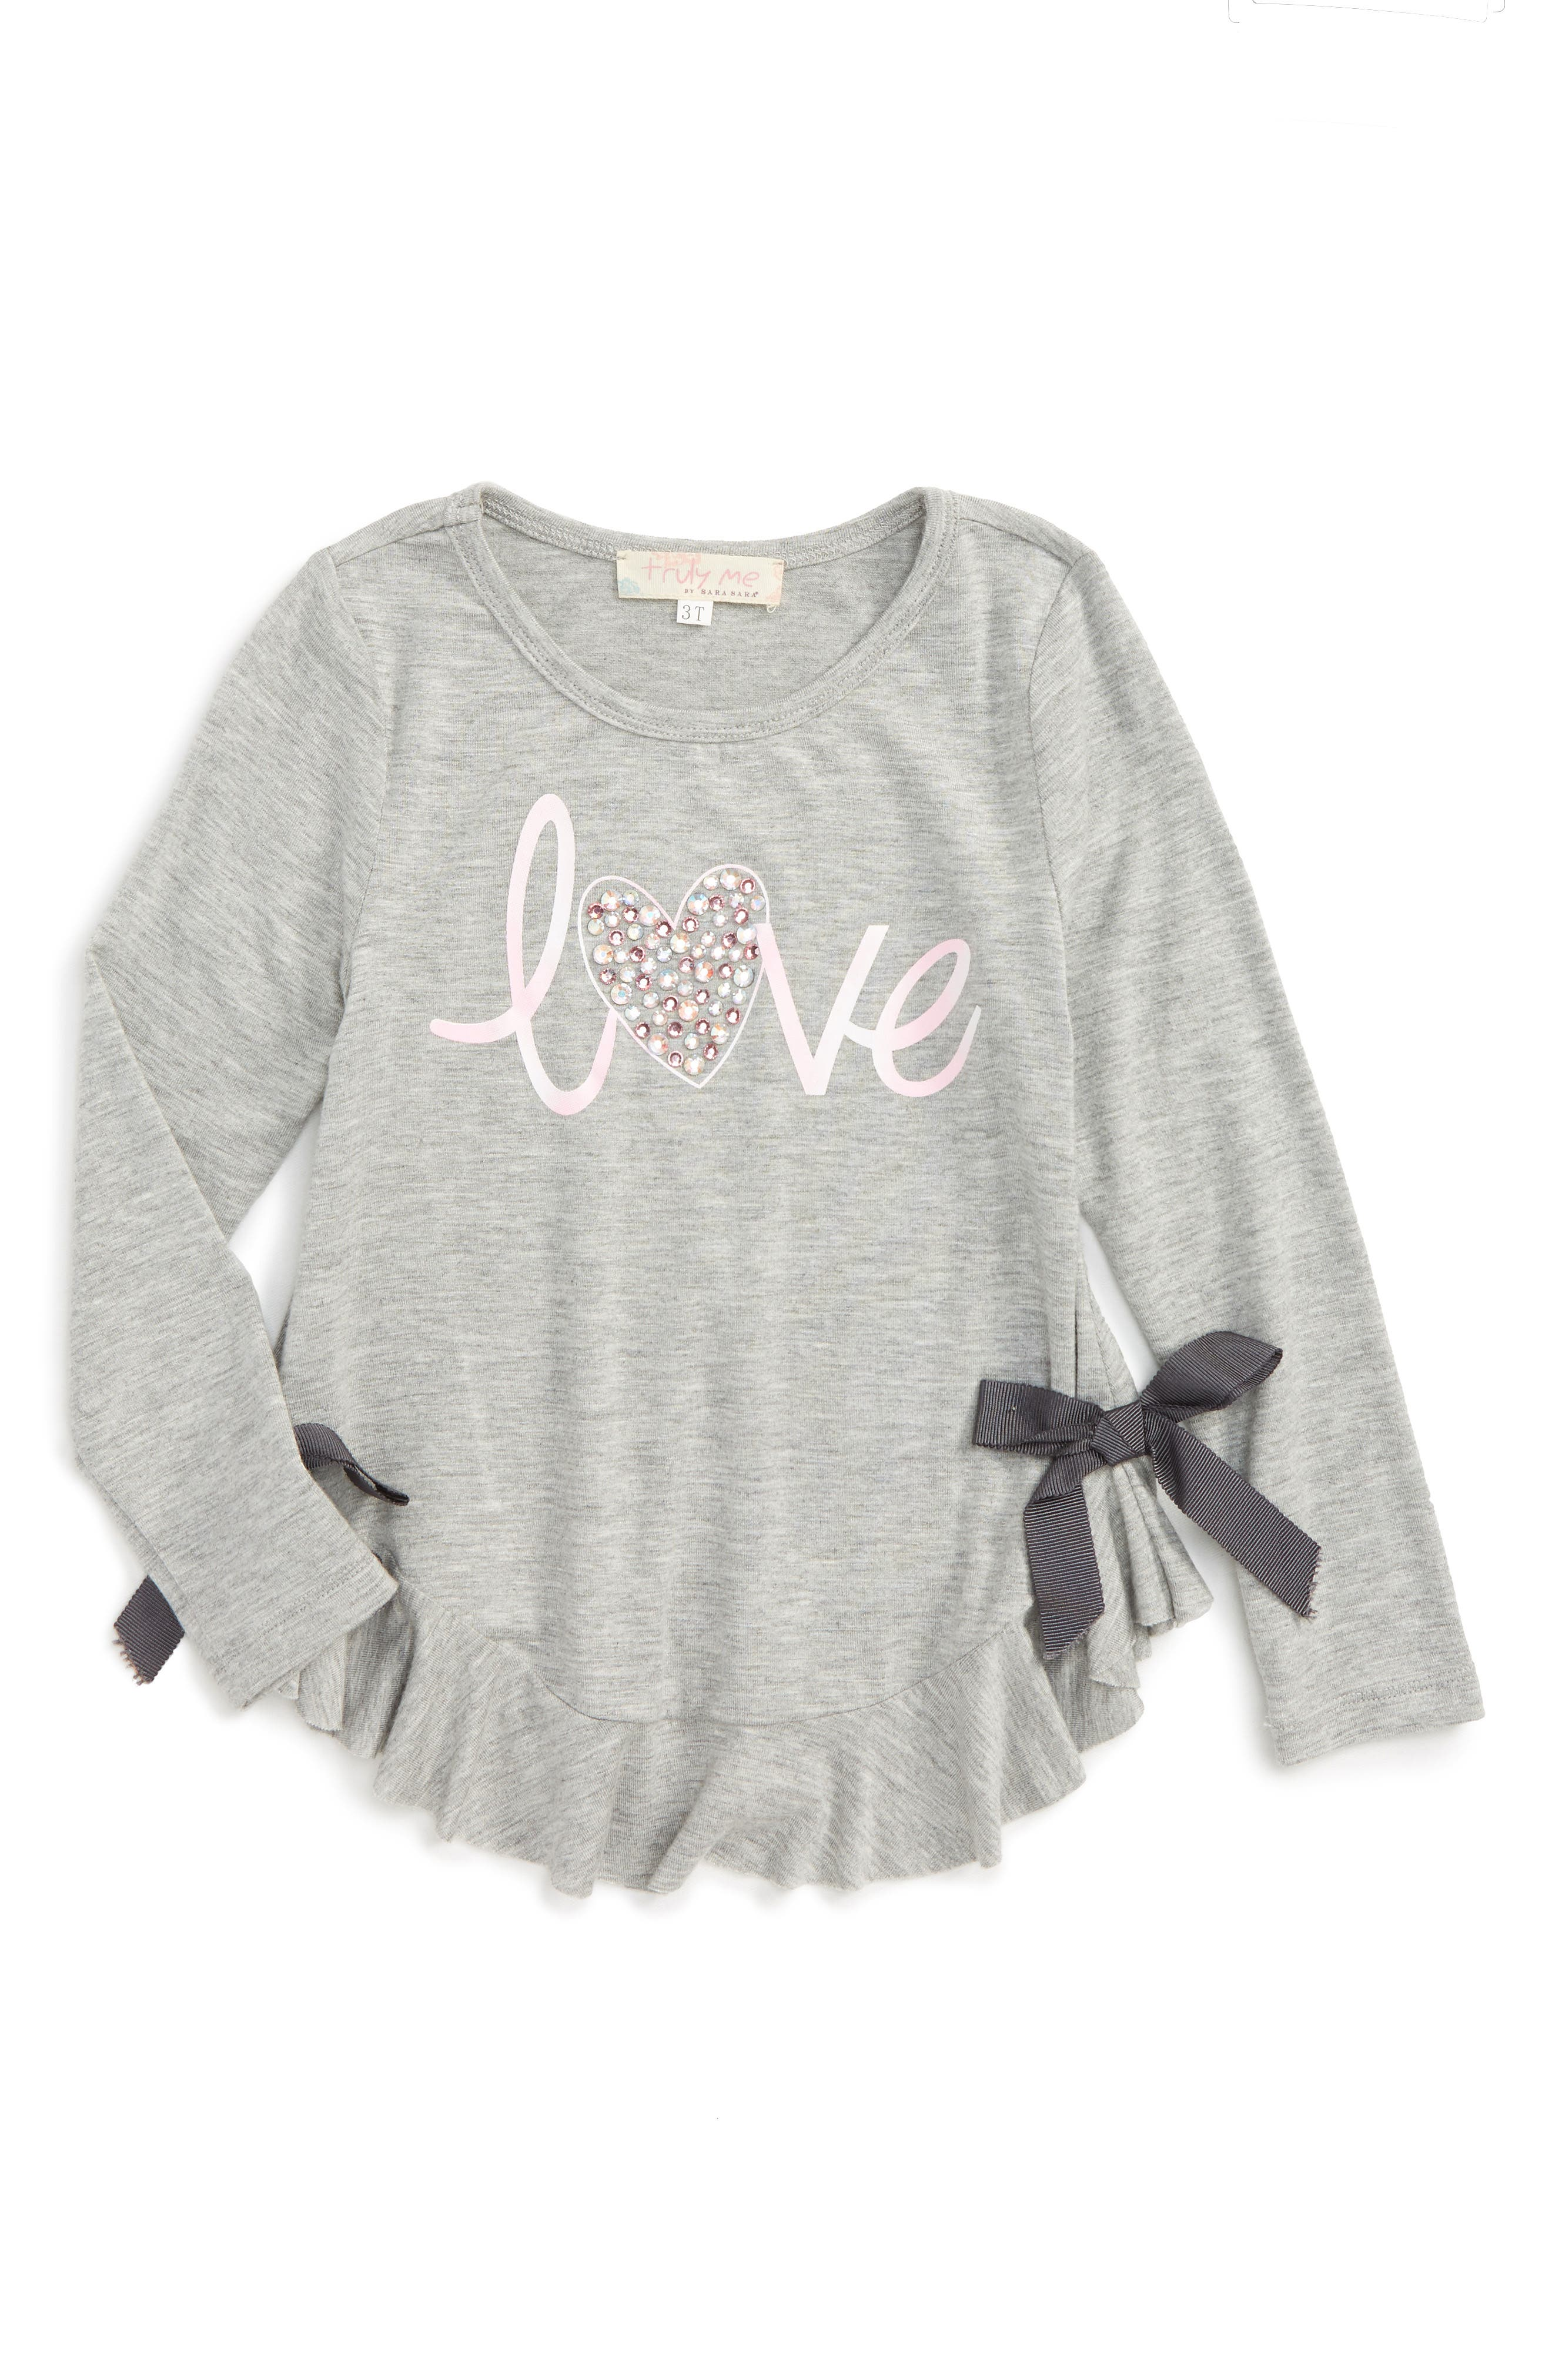 Truly Me Love Embellished Graphic Tee (Toddler Girls & Little Girls)